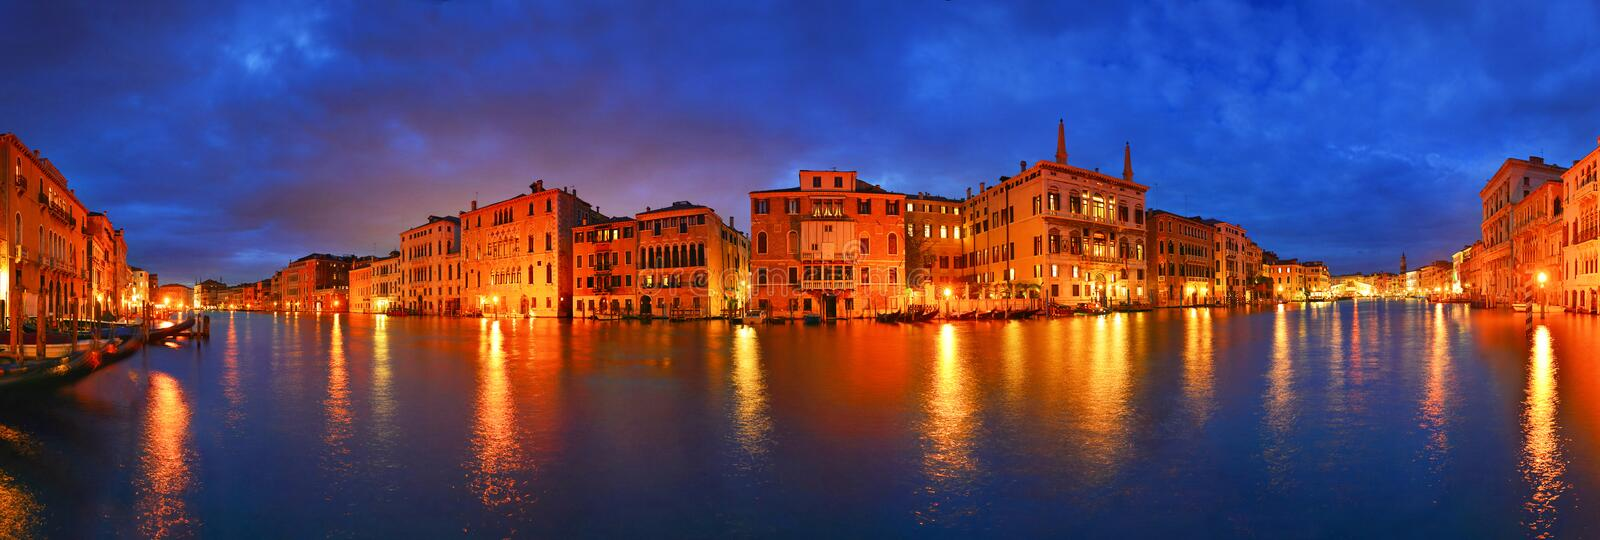 Night Grand Canal panorama, Venice, Italy royalty free stock photo